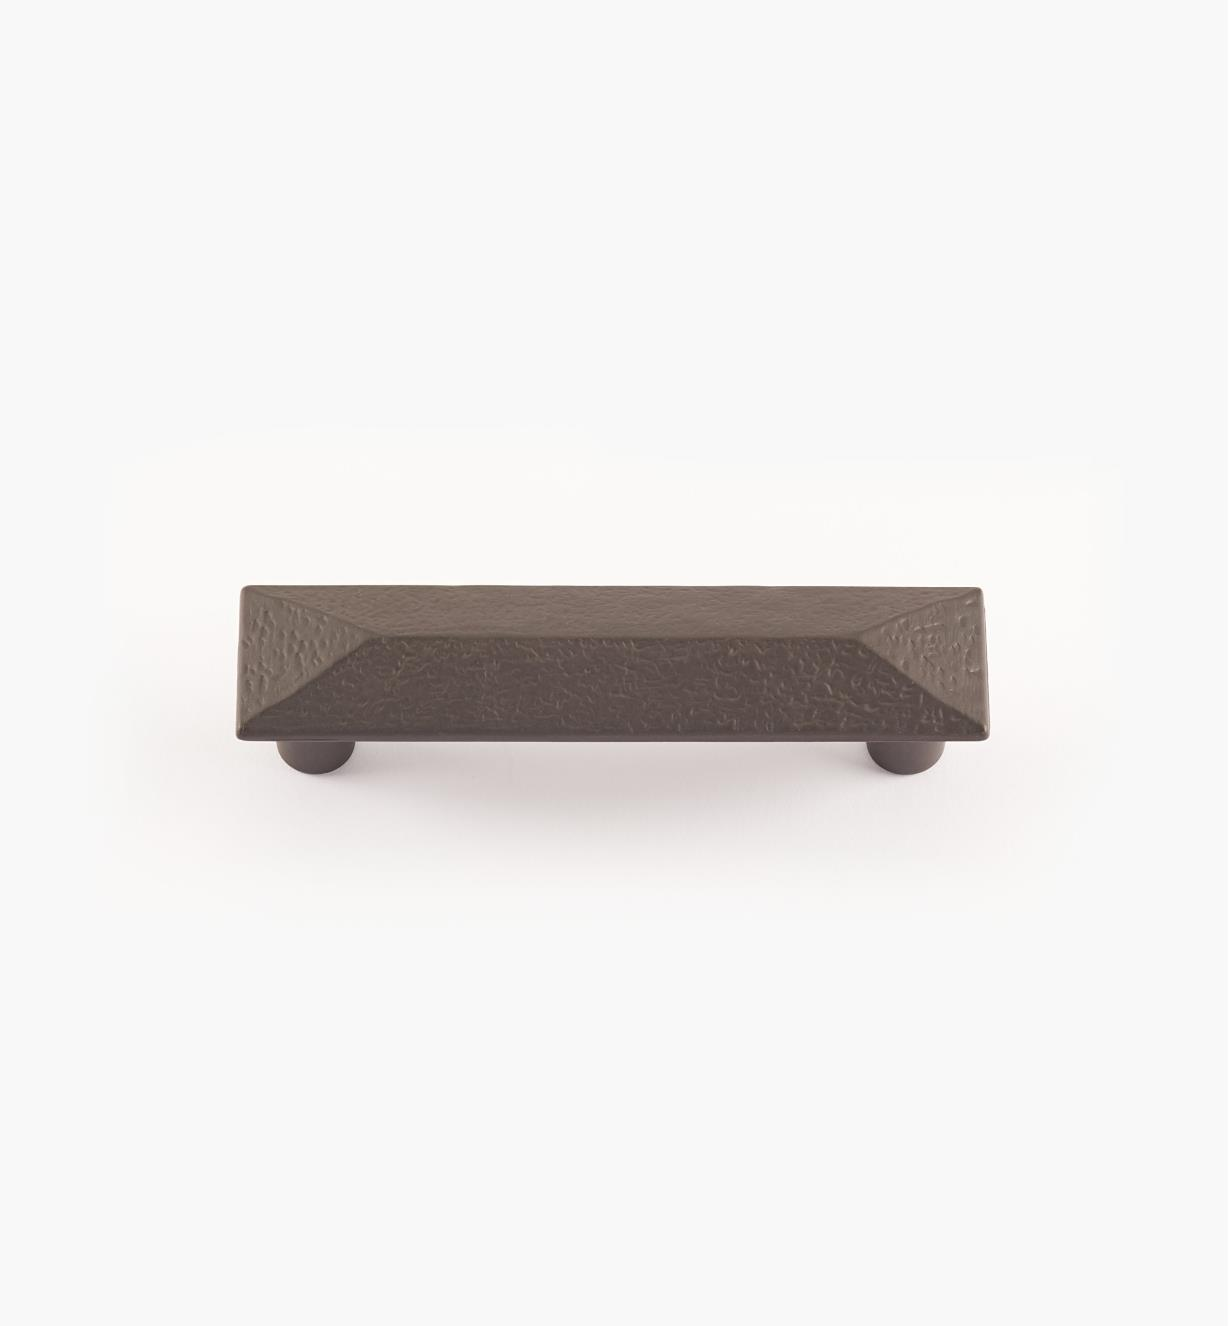 02A4450 - 76mm Oil-Rubbed Bronze Handle